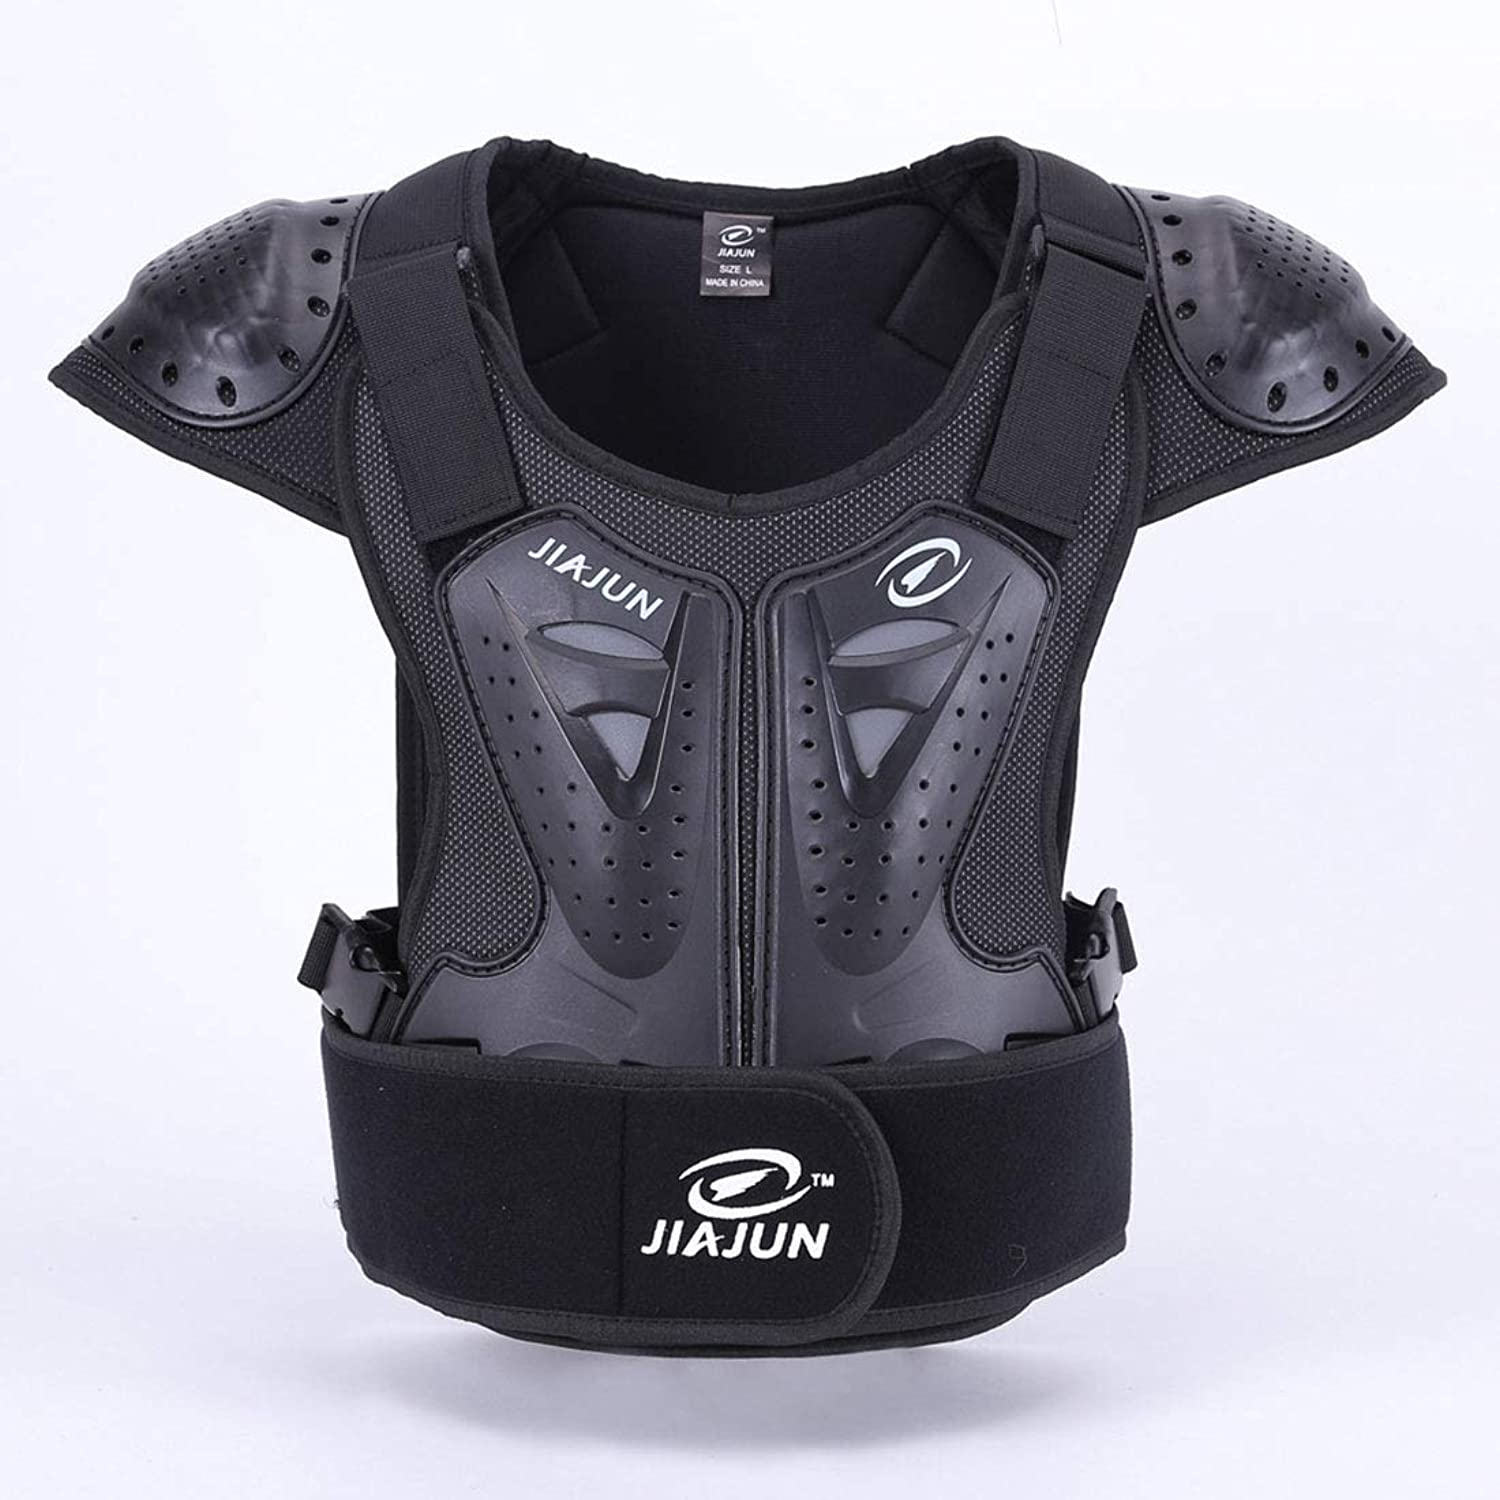 Motorcycle Predective Vest,Sport Motocross MTB Racing Body Armor Predector Back Predection AntiFall Breathable Jacket,Knight Special Predective Gear